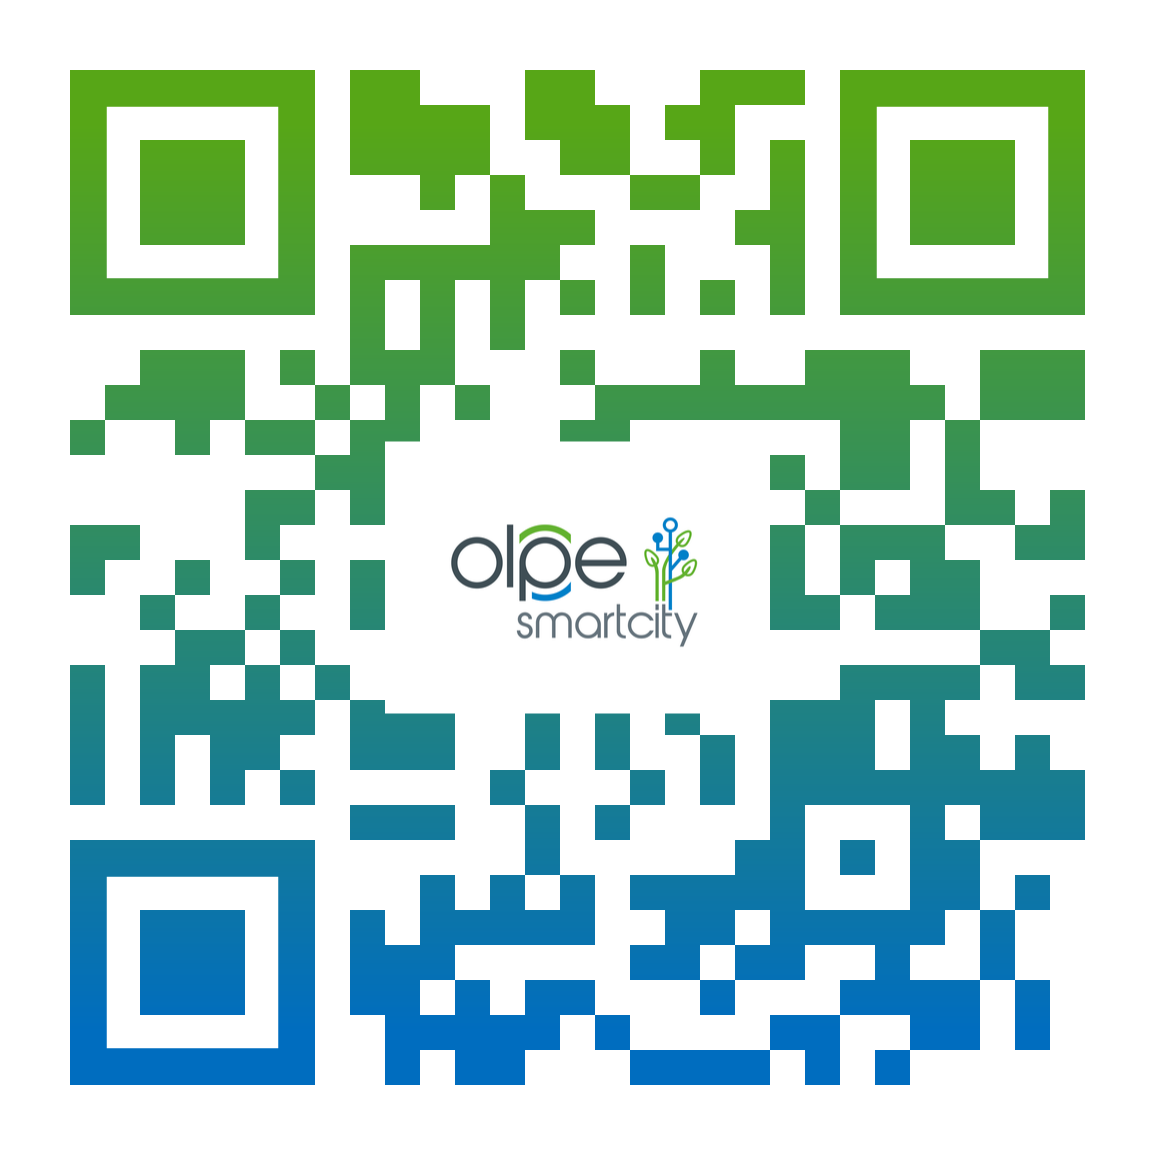 Olpe smartcity